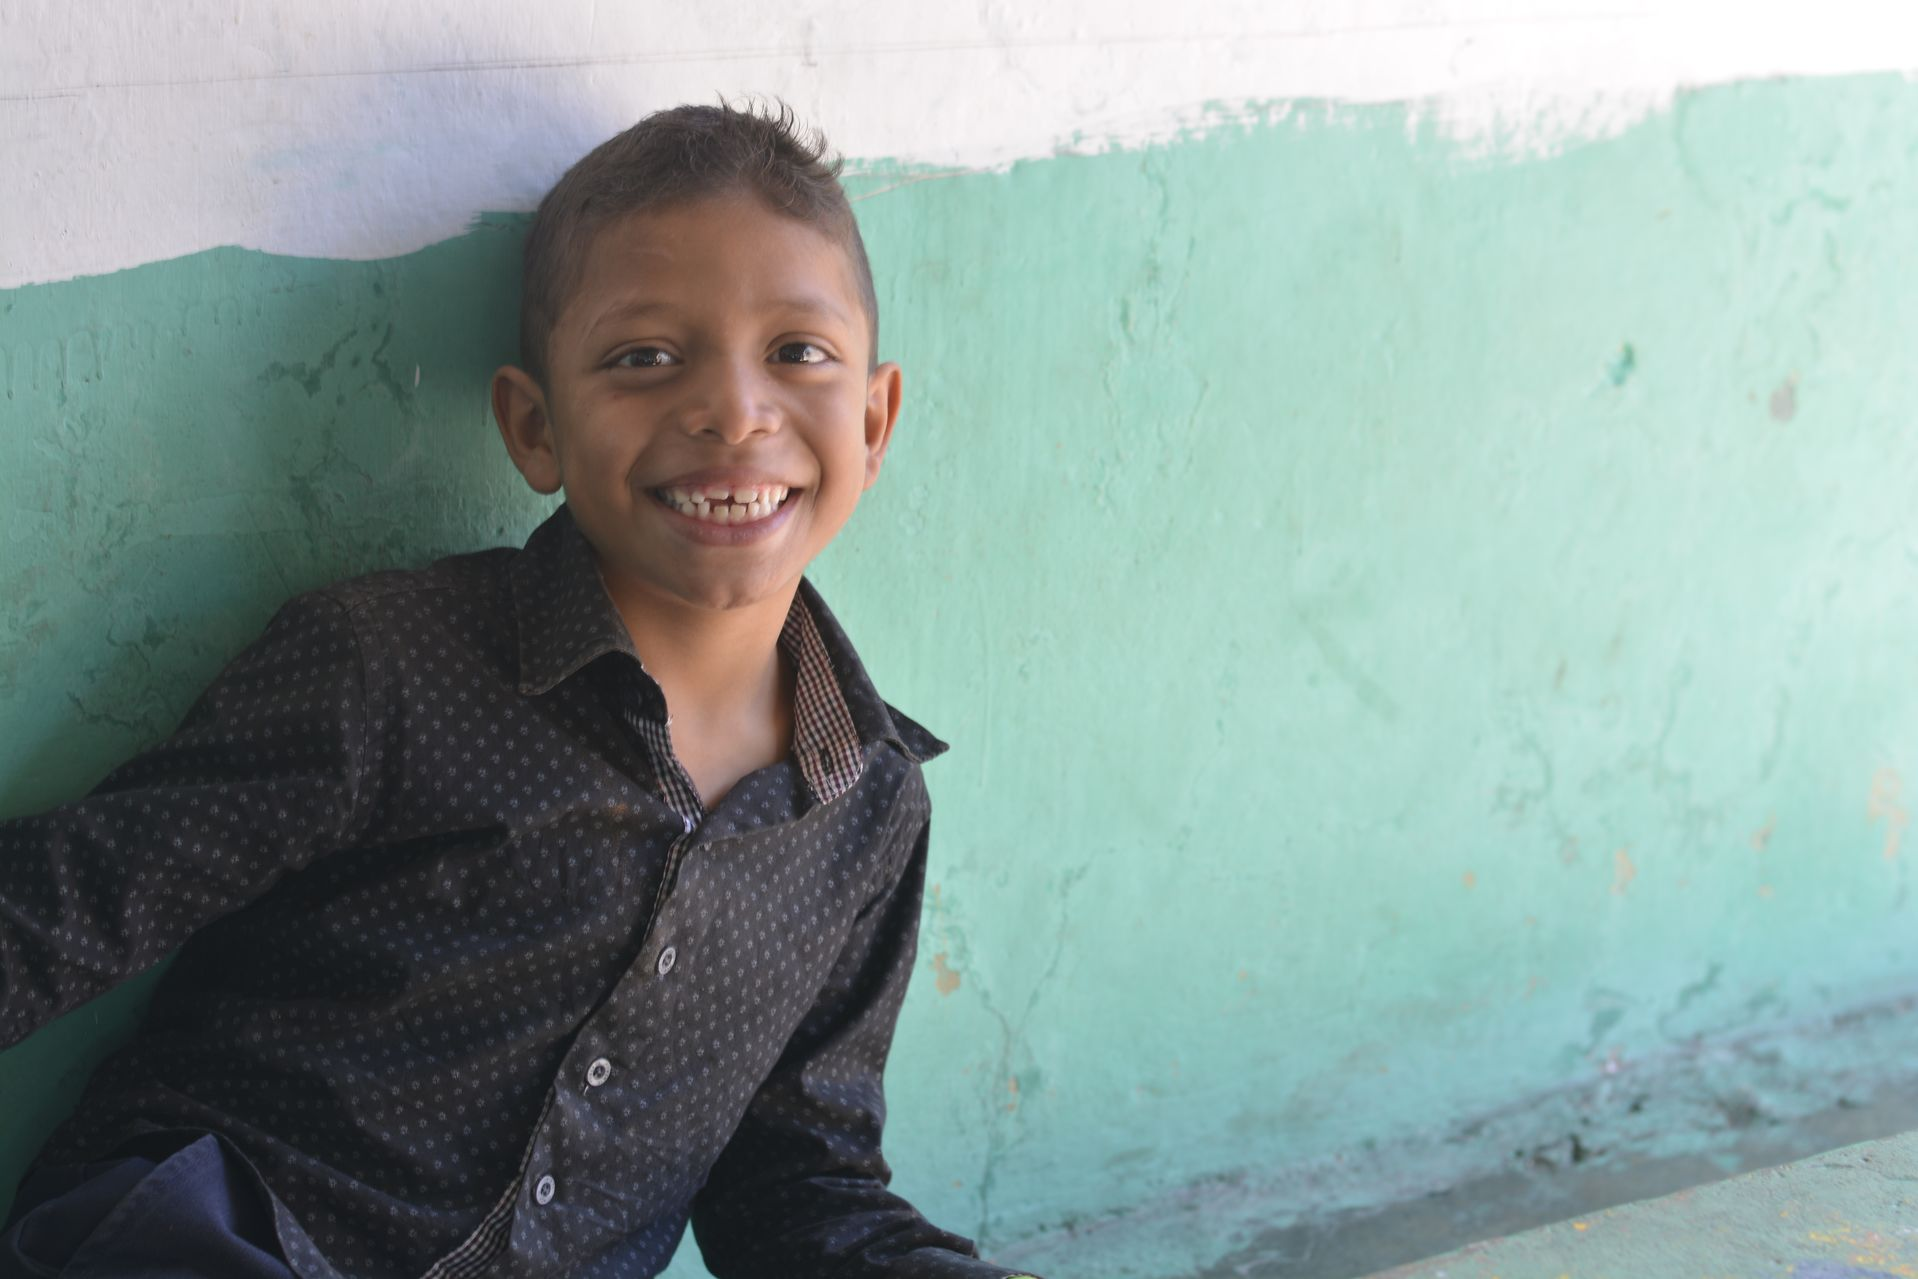 A young boy wearing a black shirt smiles in front of a green and white wall